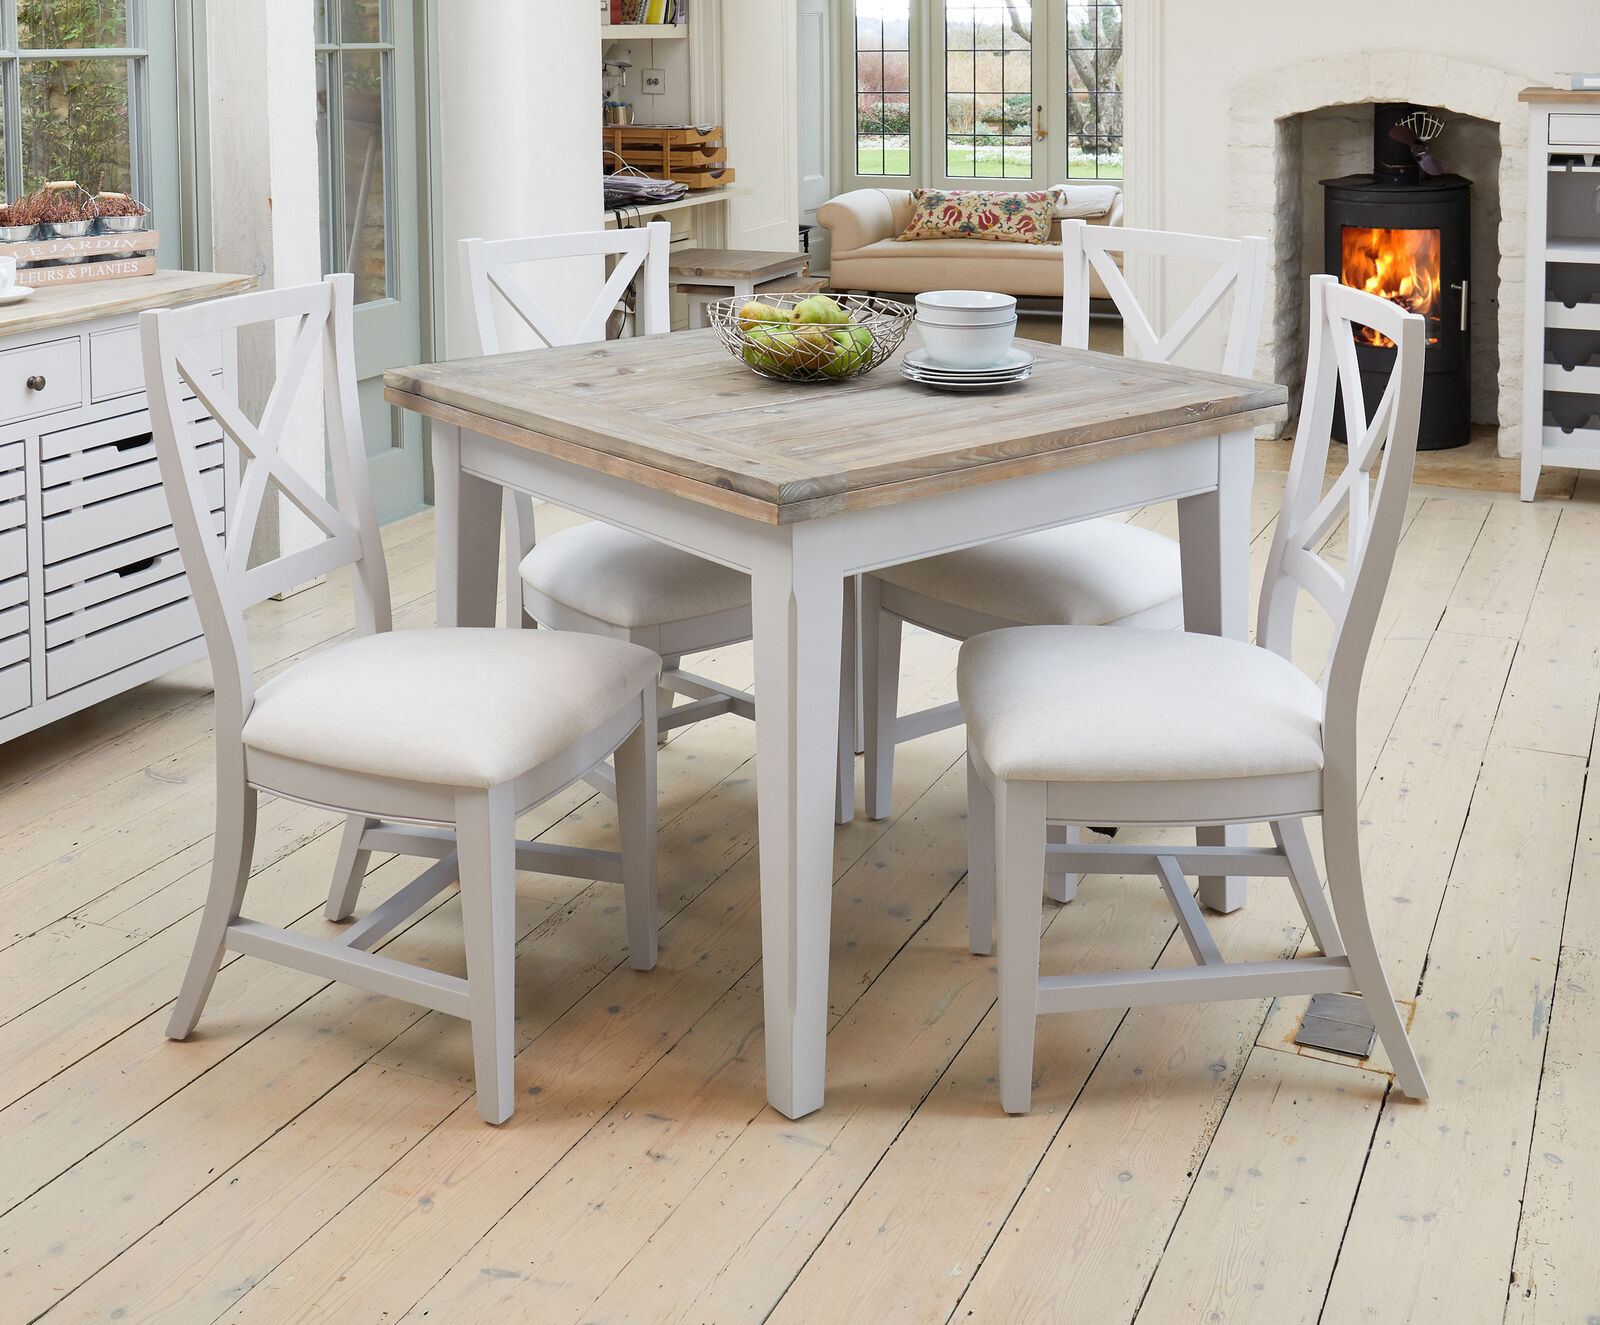 Signature Solid Wood Extending Dining Table 6 Seater Grey And Limed Oak Ebay